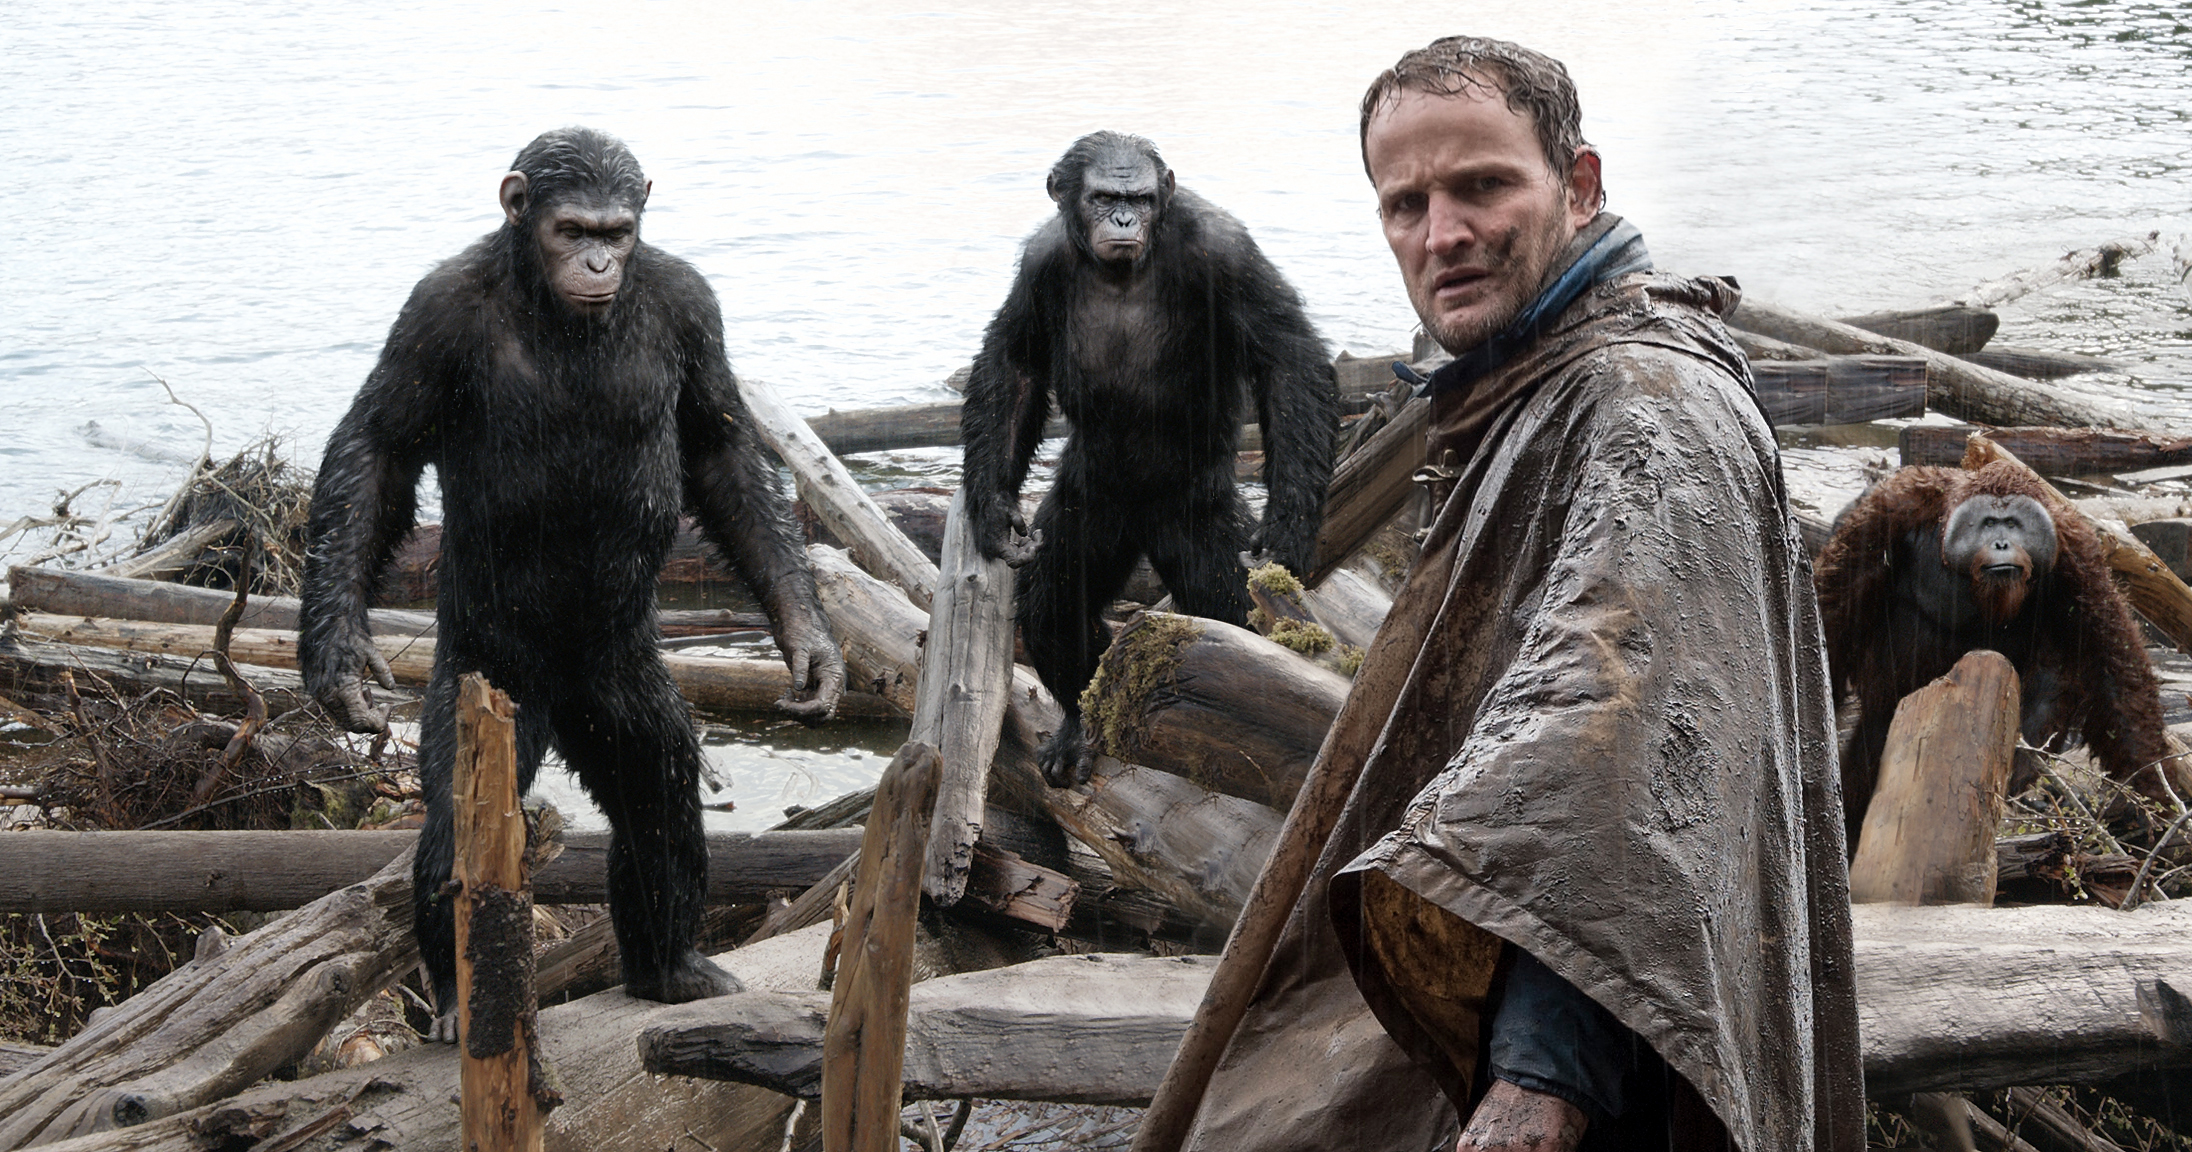 Jason Clarke as Malcolm, one of the few humans working for peace with the apes.